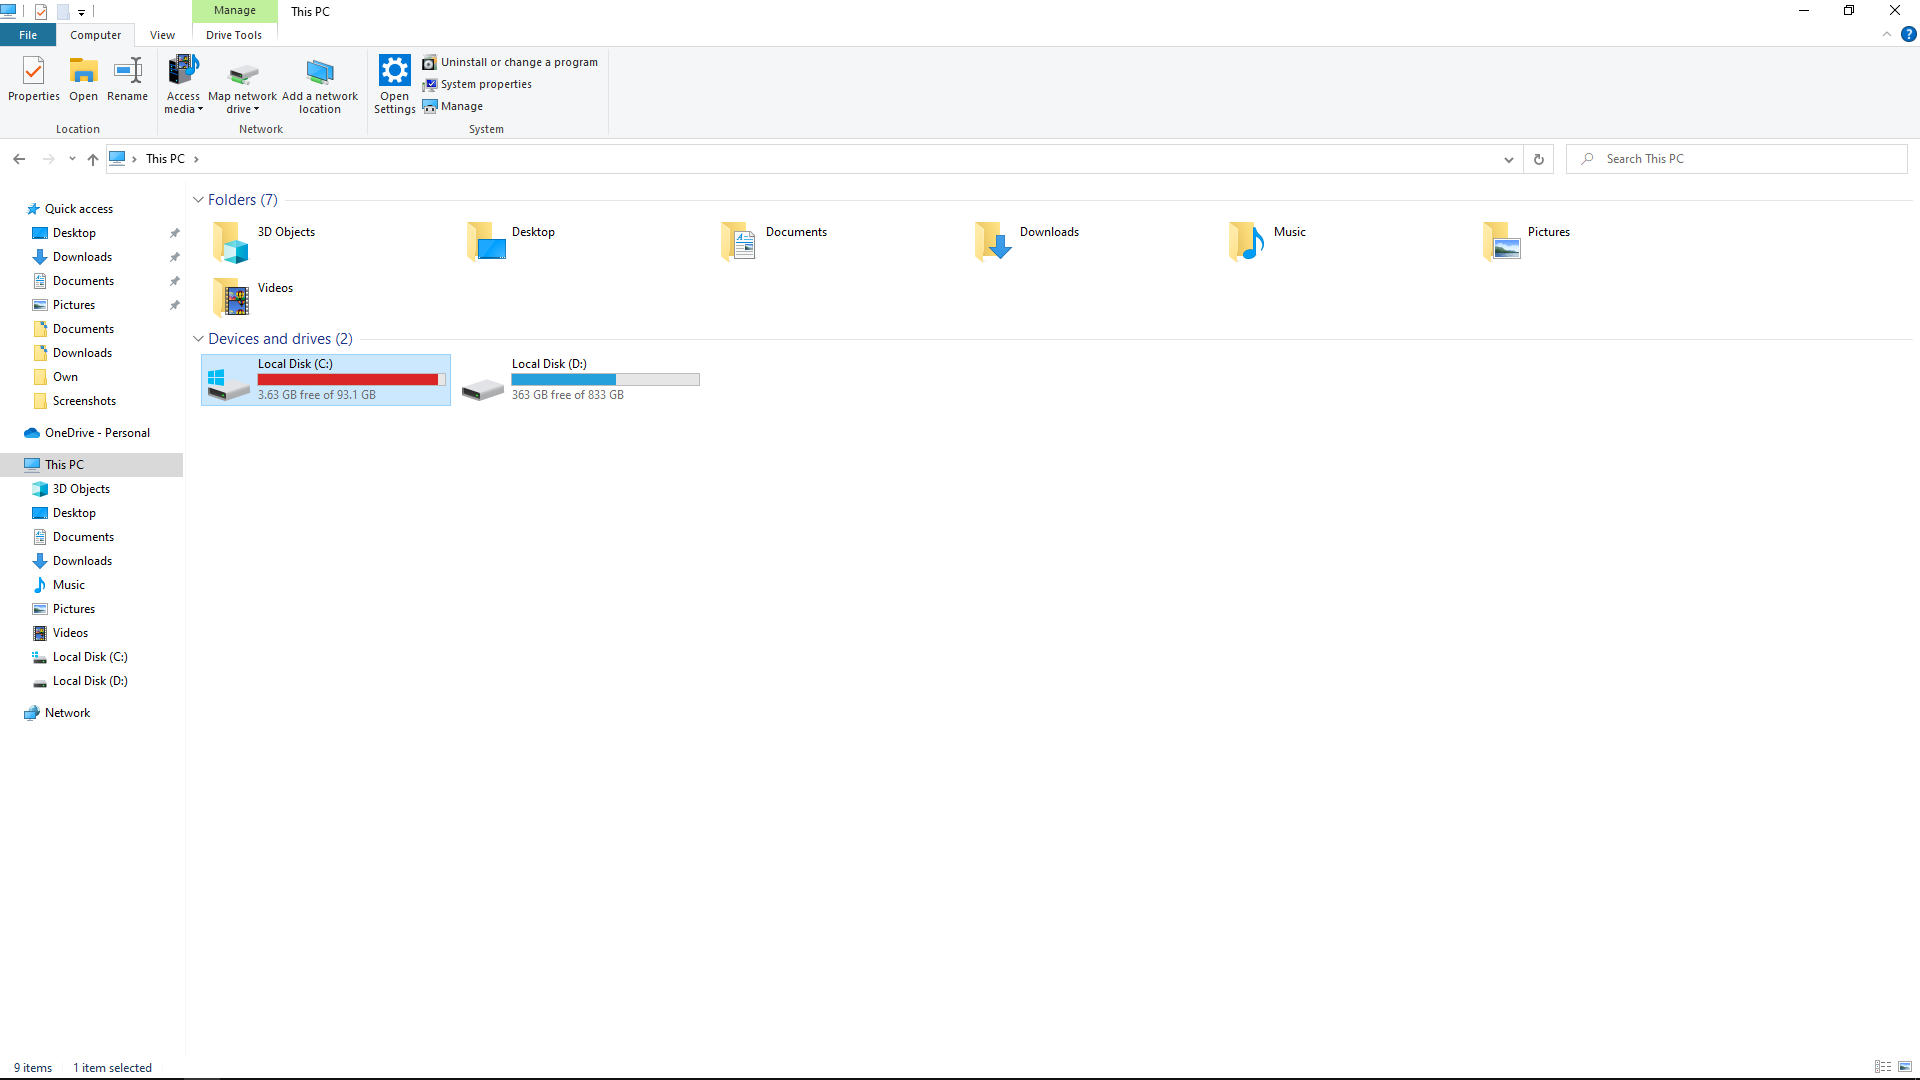 Idk how my c drive becomes full without me installing anything in it efe033a6-9507-4e2f-939b-a678c15746bf?upload=true.png